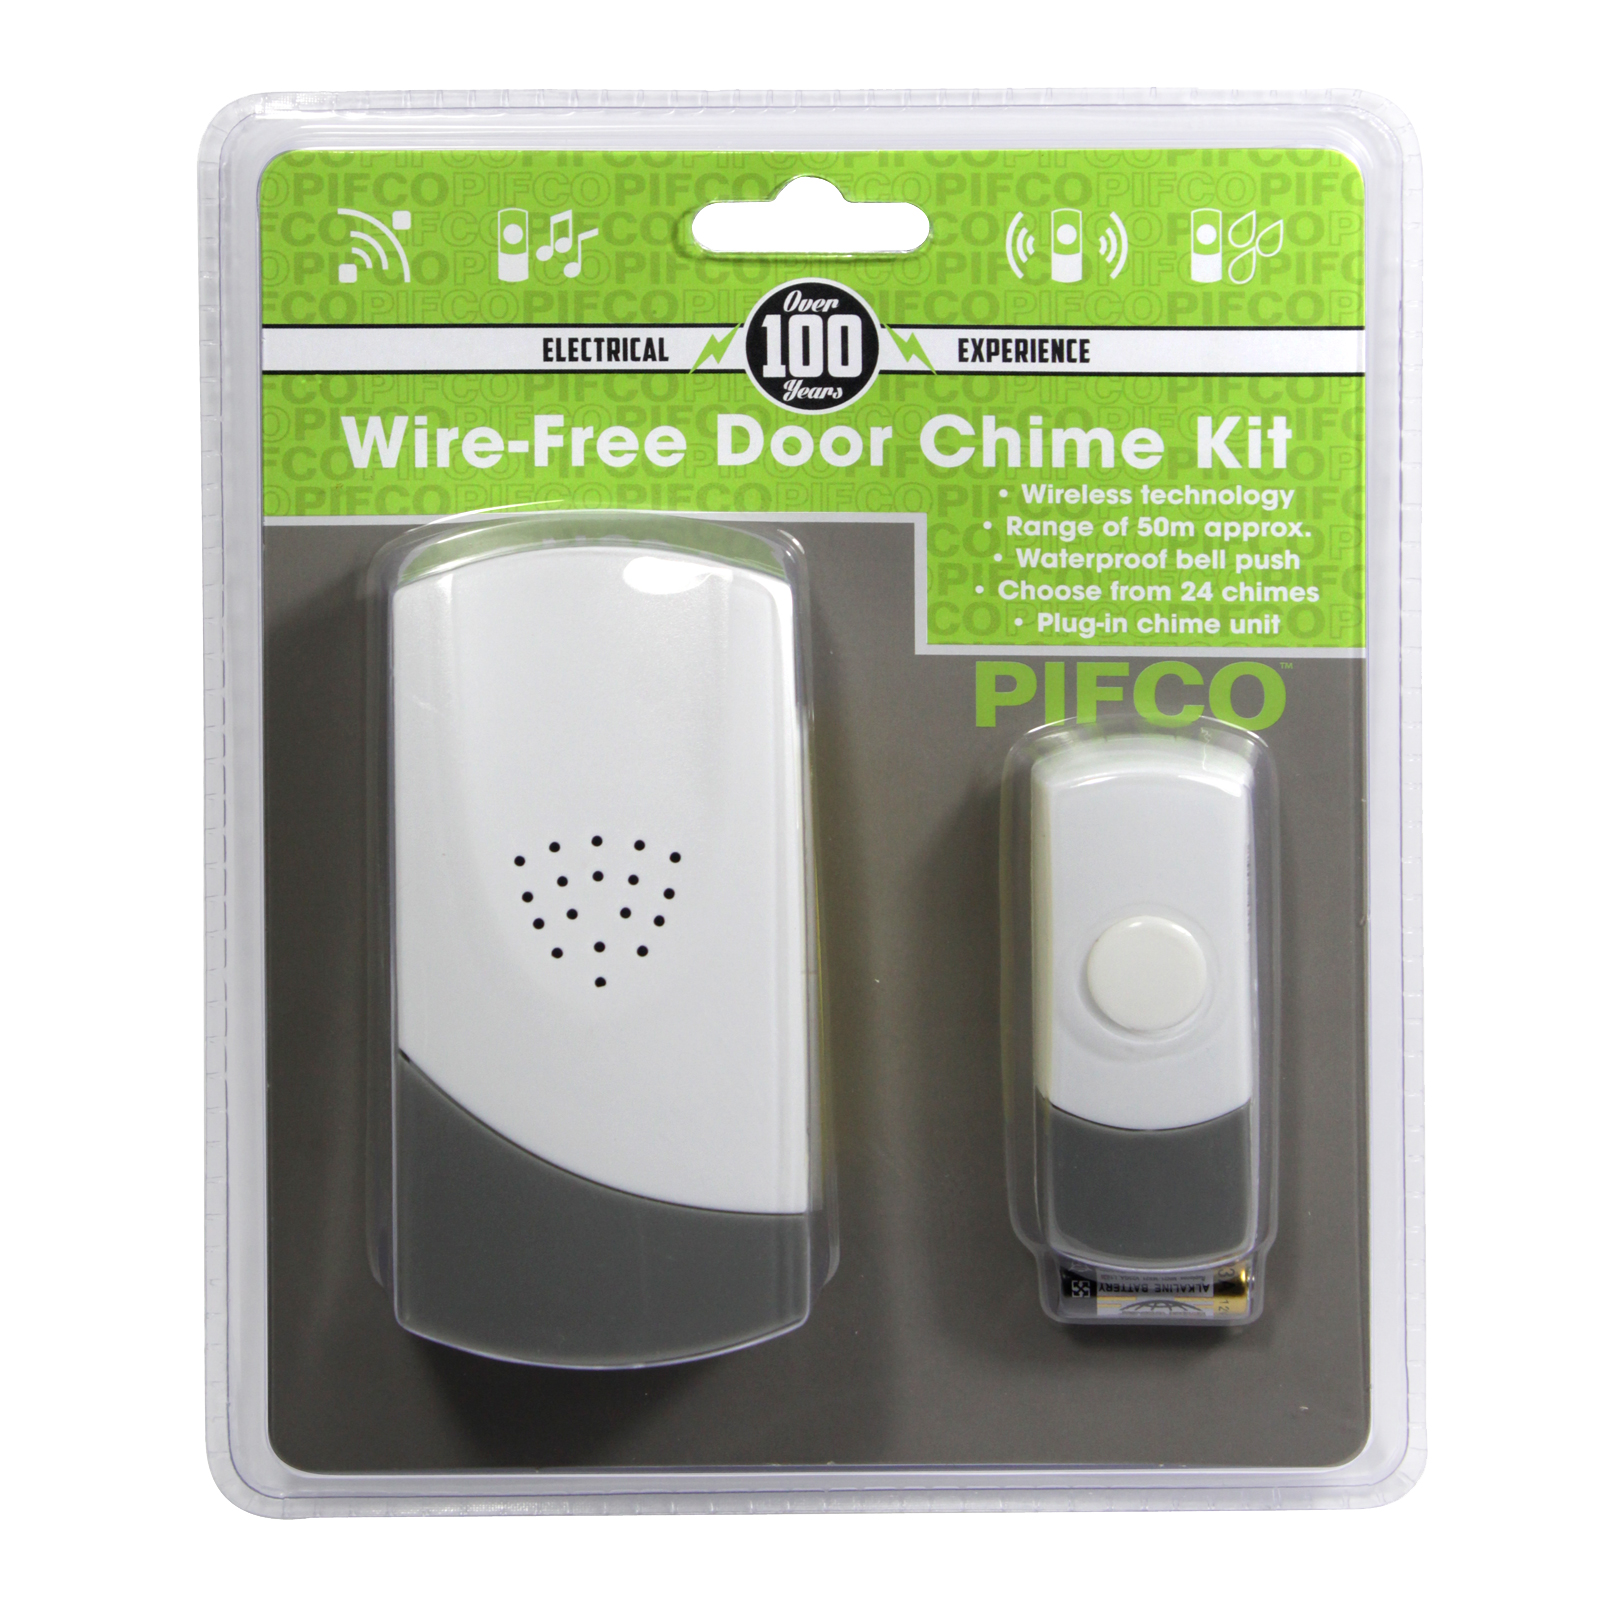 PIFCO WIRE FREE DOOR CHIME PLUG-IN